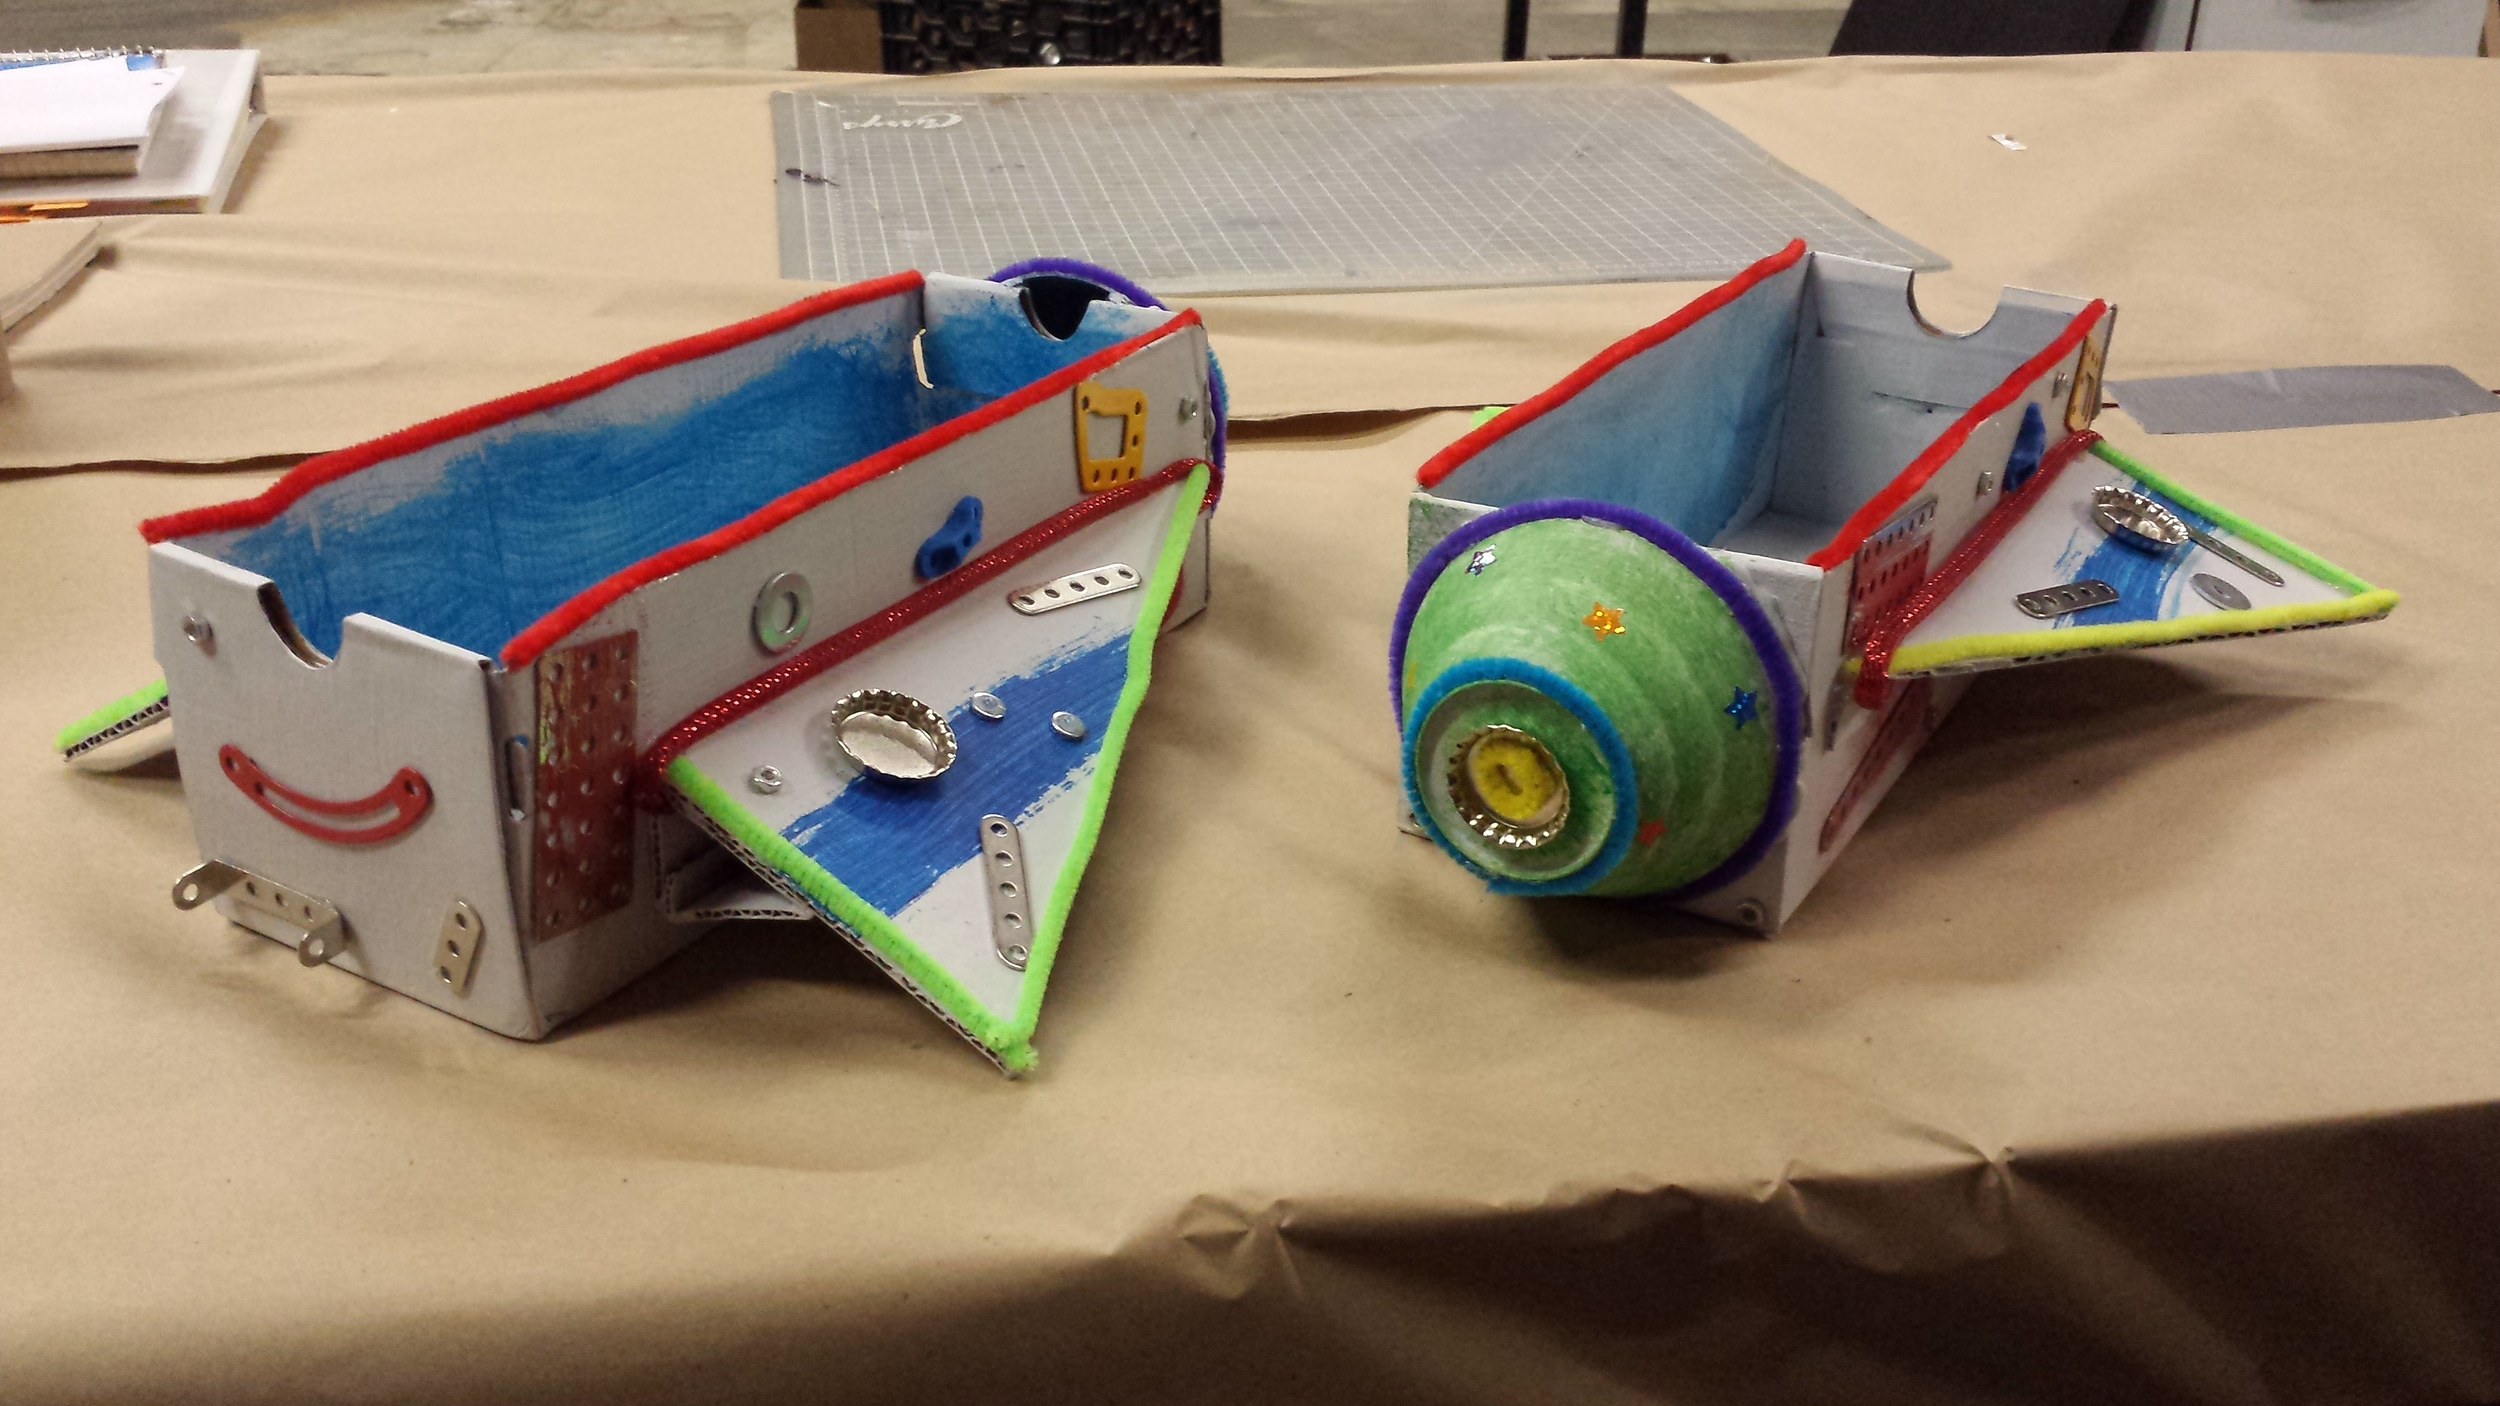 Rocket ship for puppet to appear made by child. (Playdate 2015)